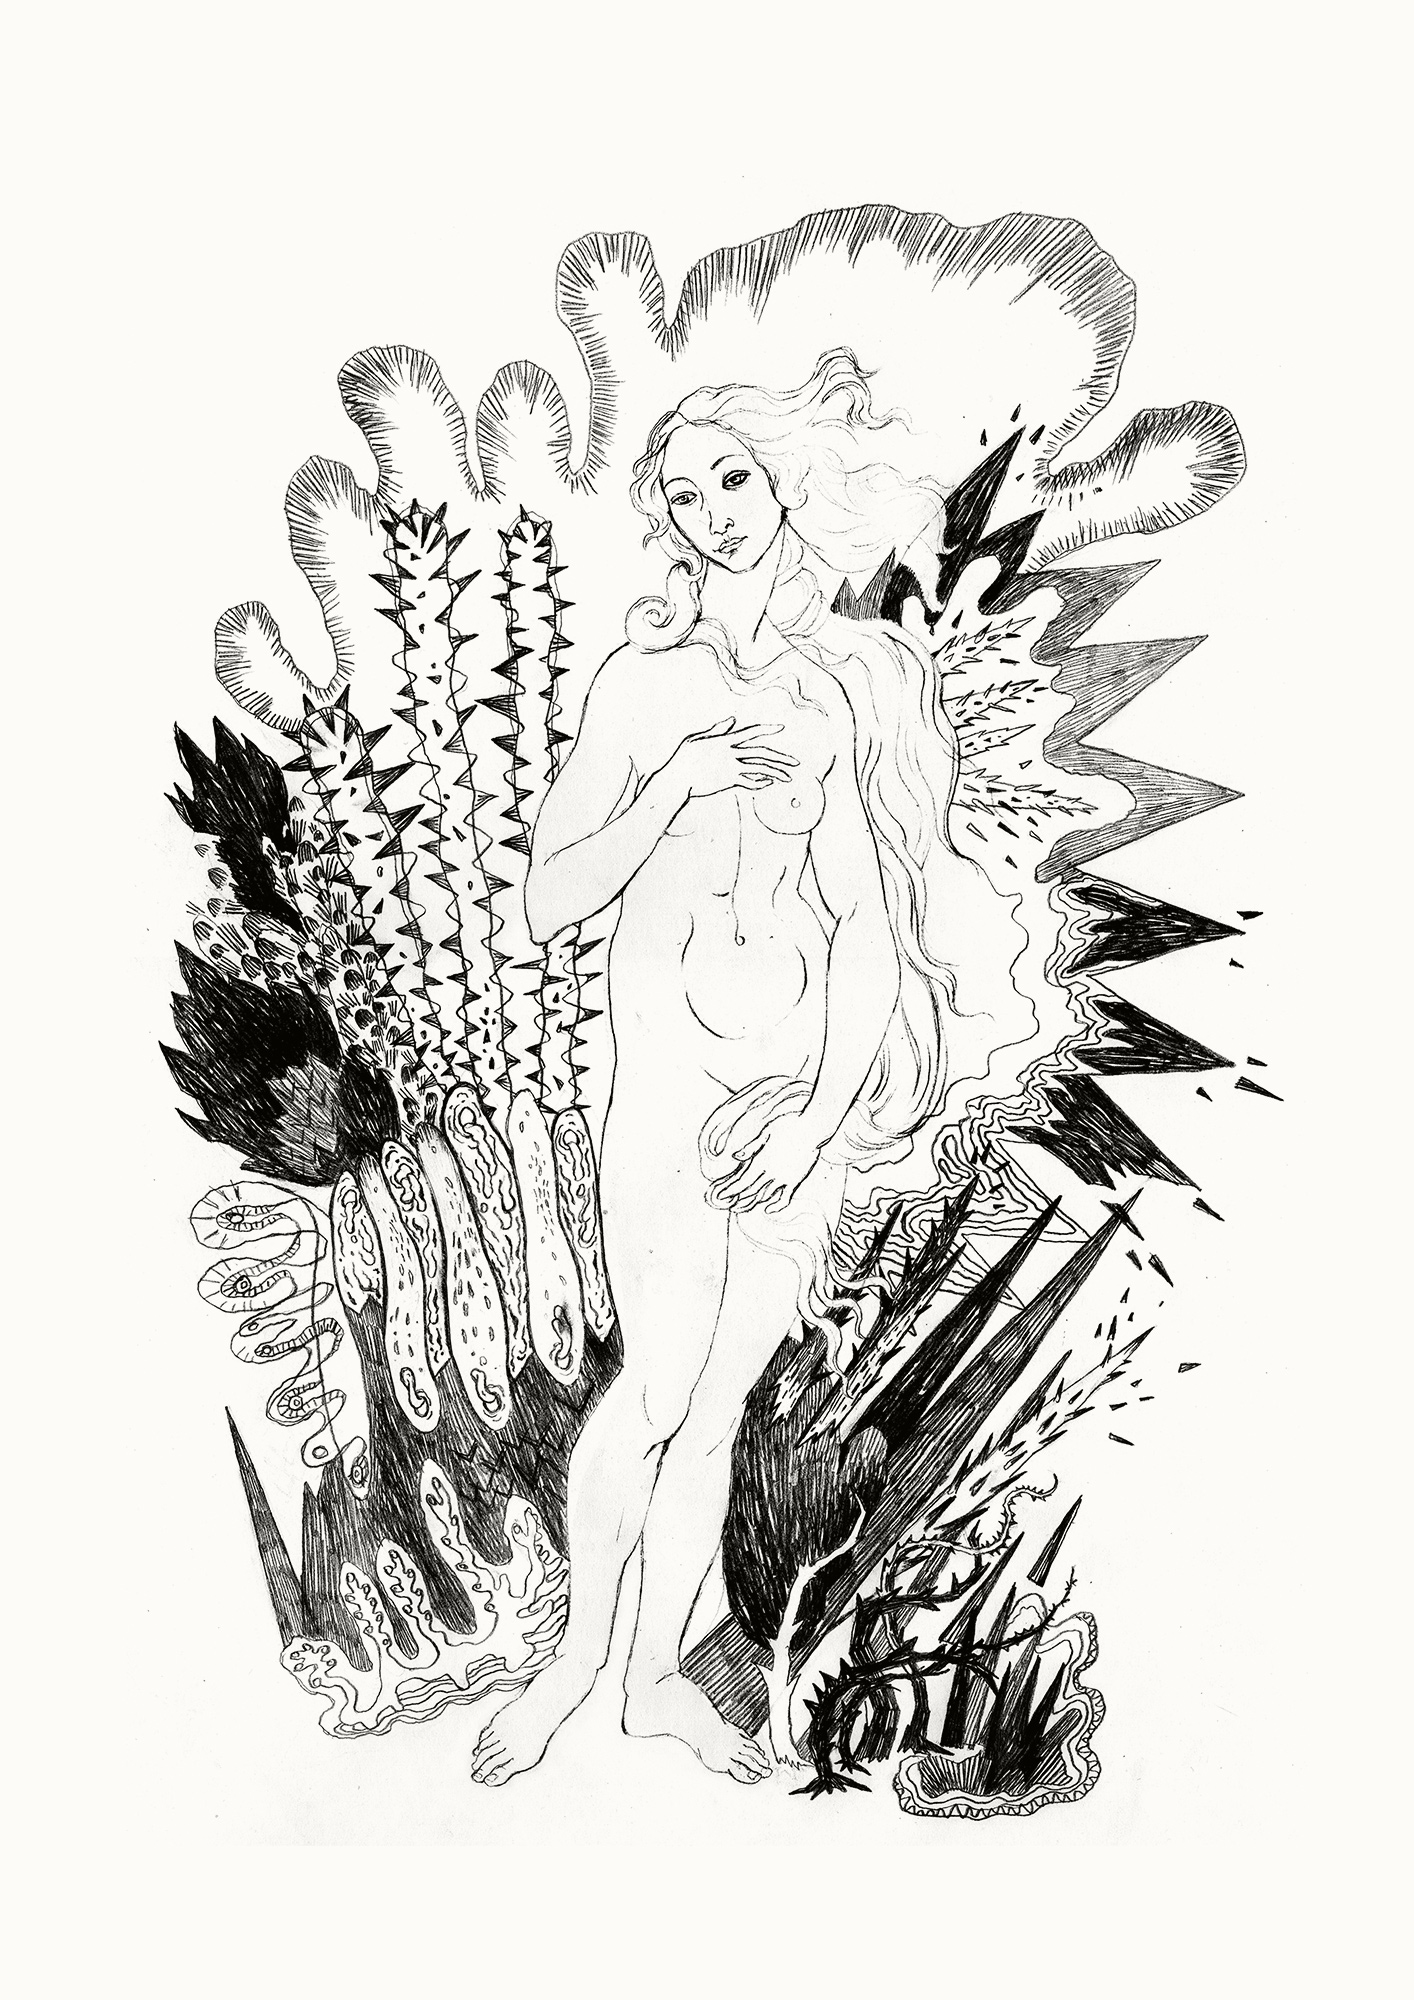 posters-prints, giclee-print, aesthetic, figurative, monochrome, portraiture, bodies, botany, sexuality, black, white, ink, paper, black-and-white, contemporary-art, danish, decorative, design, erotic, flowers, interior, interior-design, modern, modern-art, nordic, nude, scandinavien, sexual, Buy original high quality art. Paintings, drawings, limited edition prints & posters by talented artists.